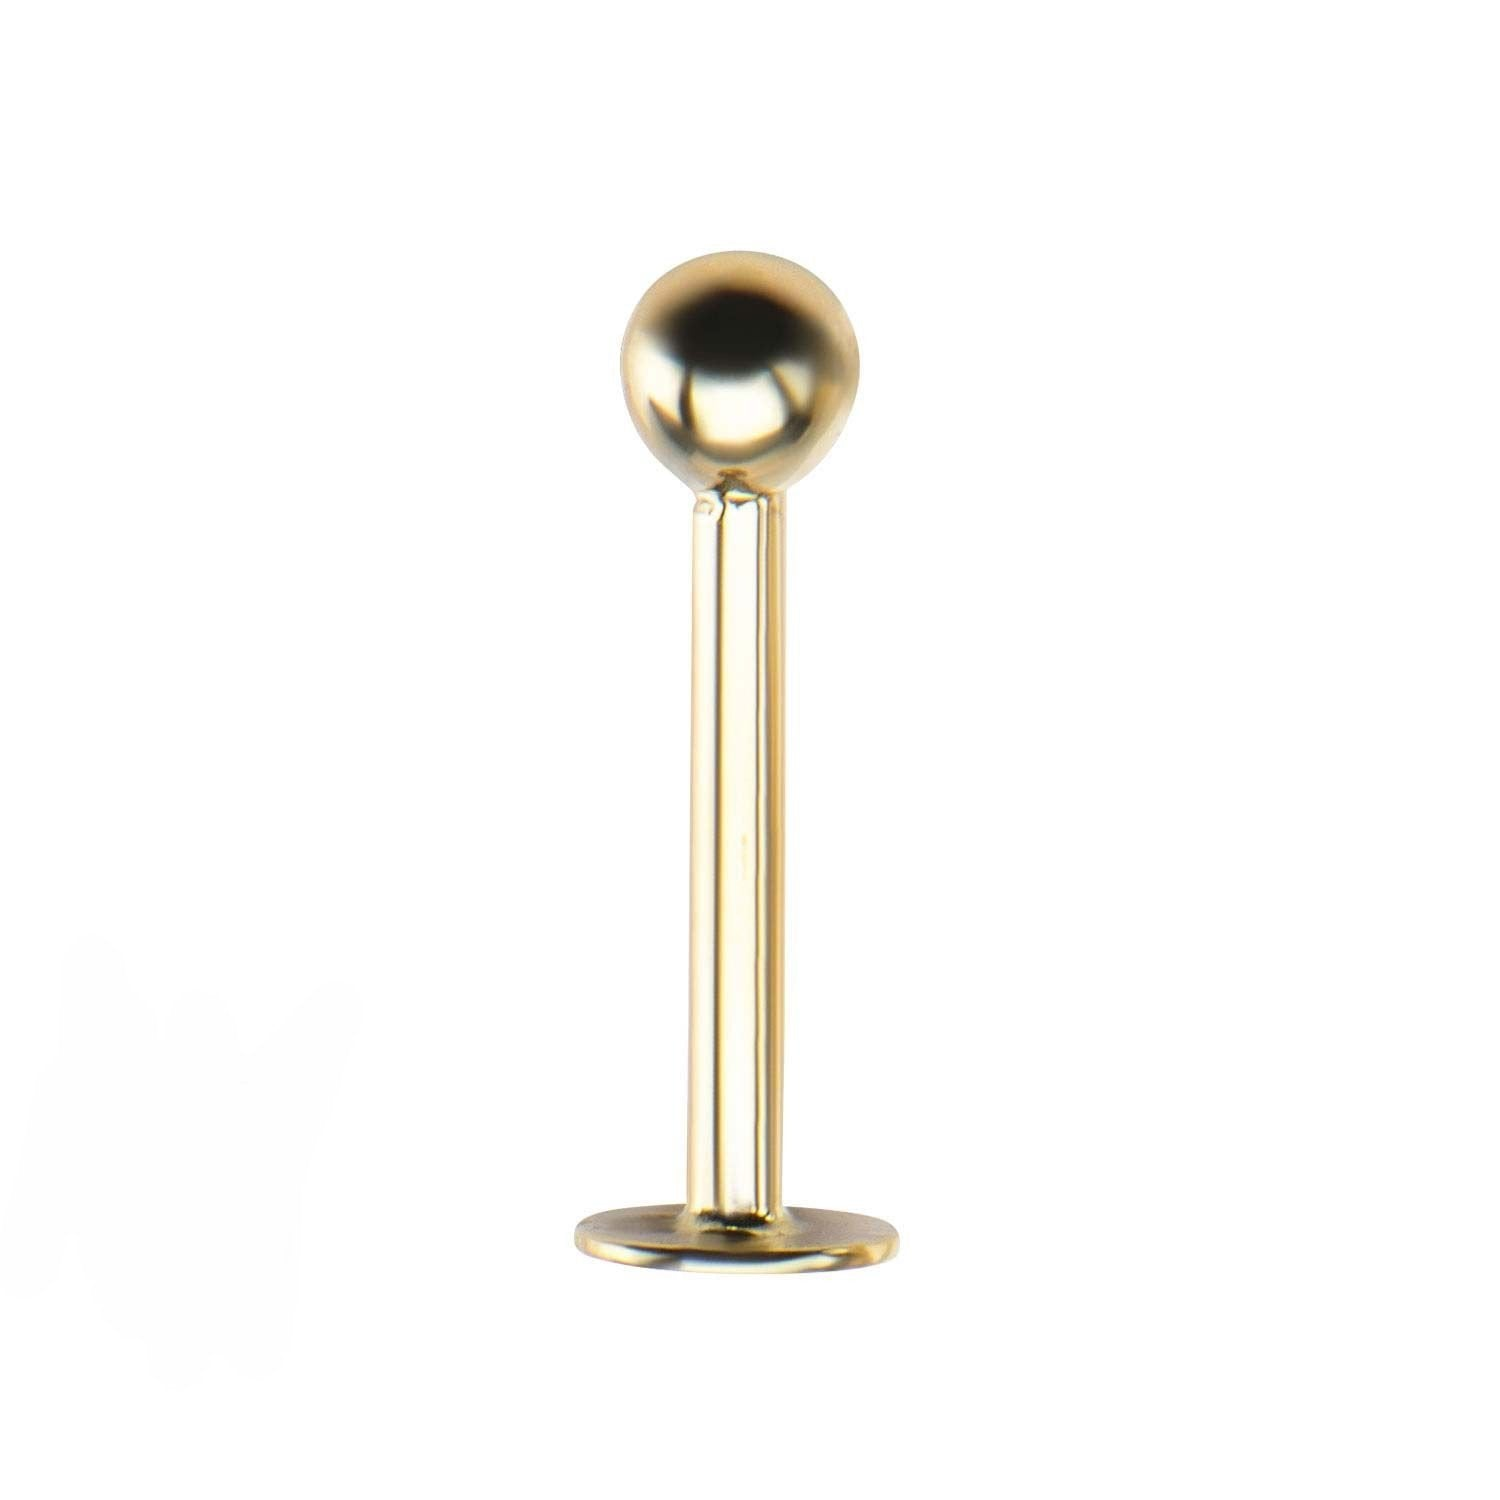 Lip Piercing/Labret/Labret Piercing/Lip Piercing Jewelry/Labret Jewelry/Labret Studs 14kt Gold Labret with Ball Top sbvgl611 -Rebel Bod-RebelBod